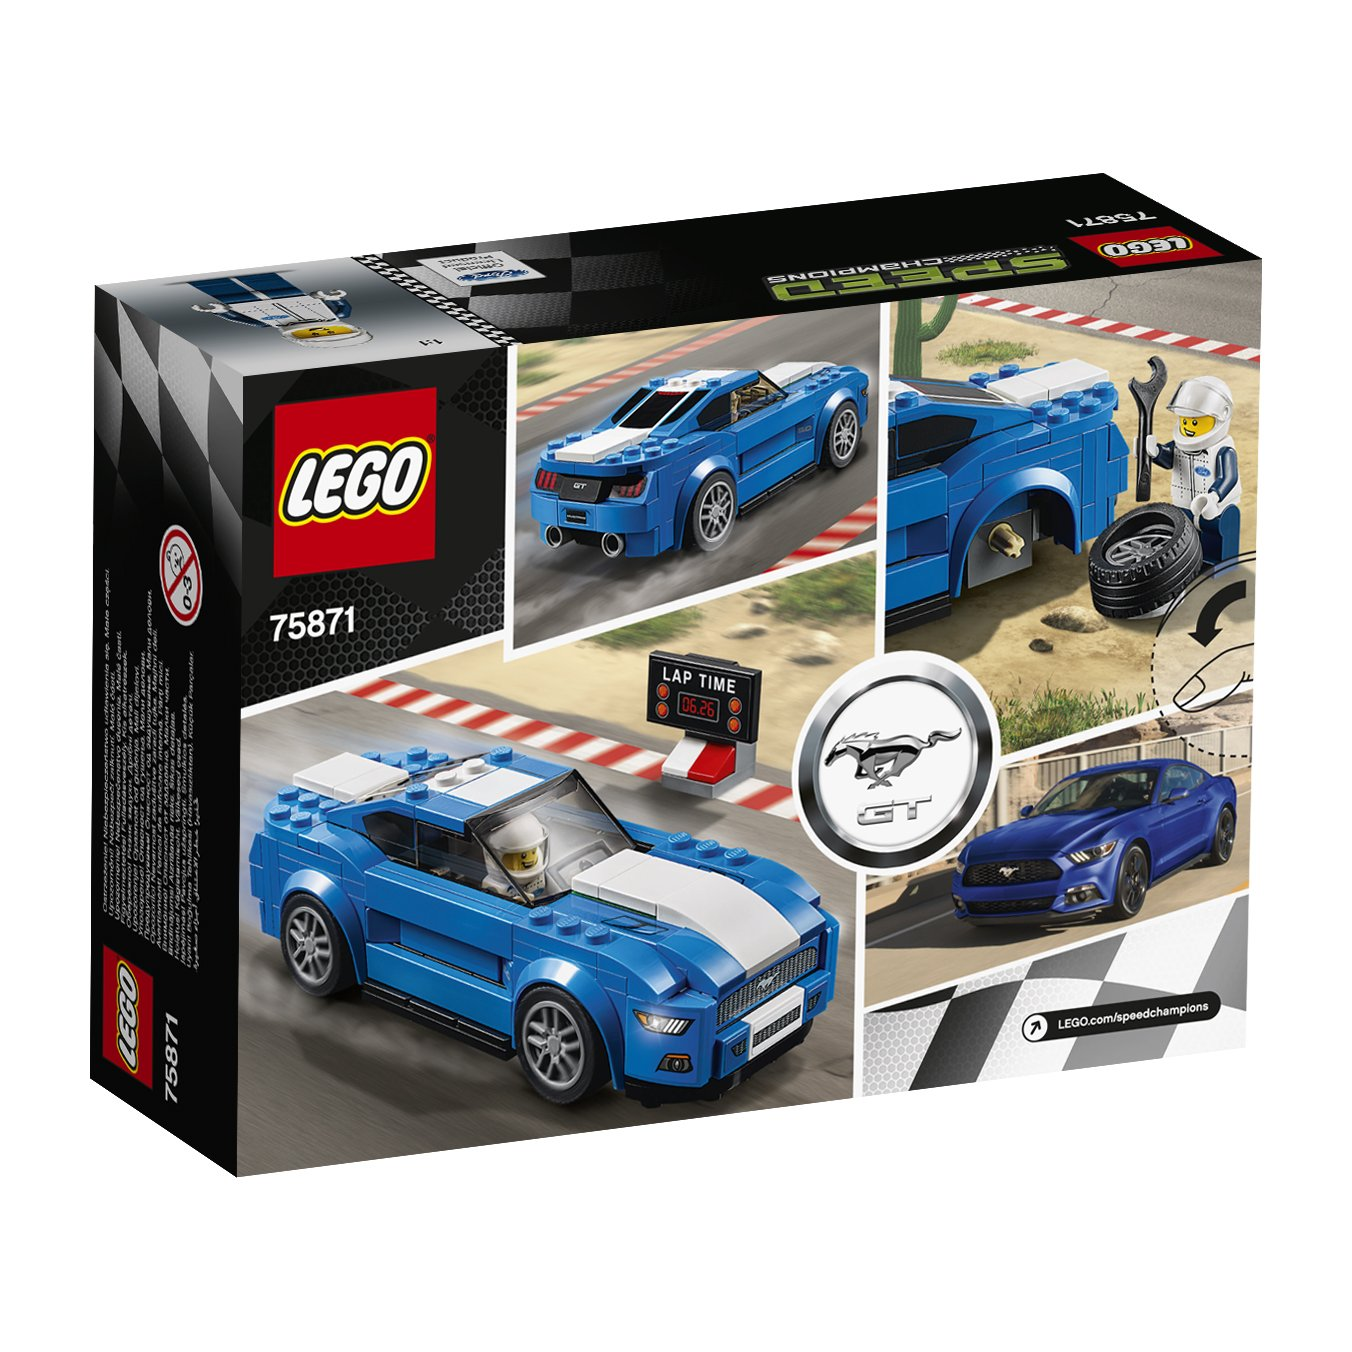 Top 5 Best LEGO Mustang Sets Reviews in 2021 7